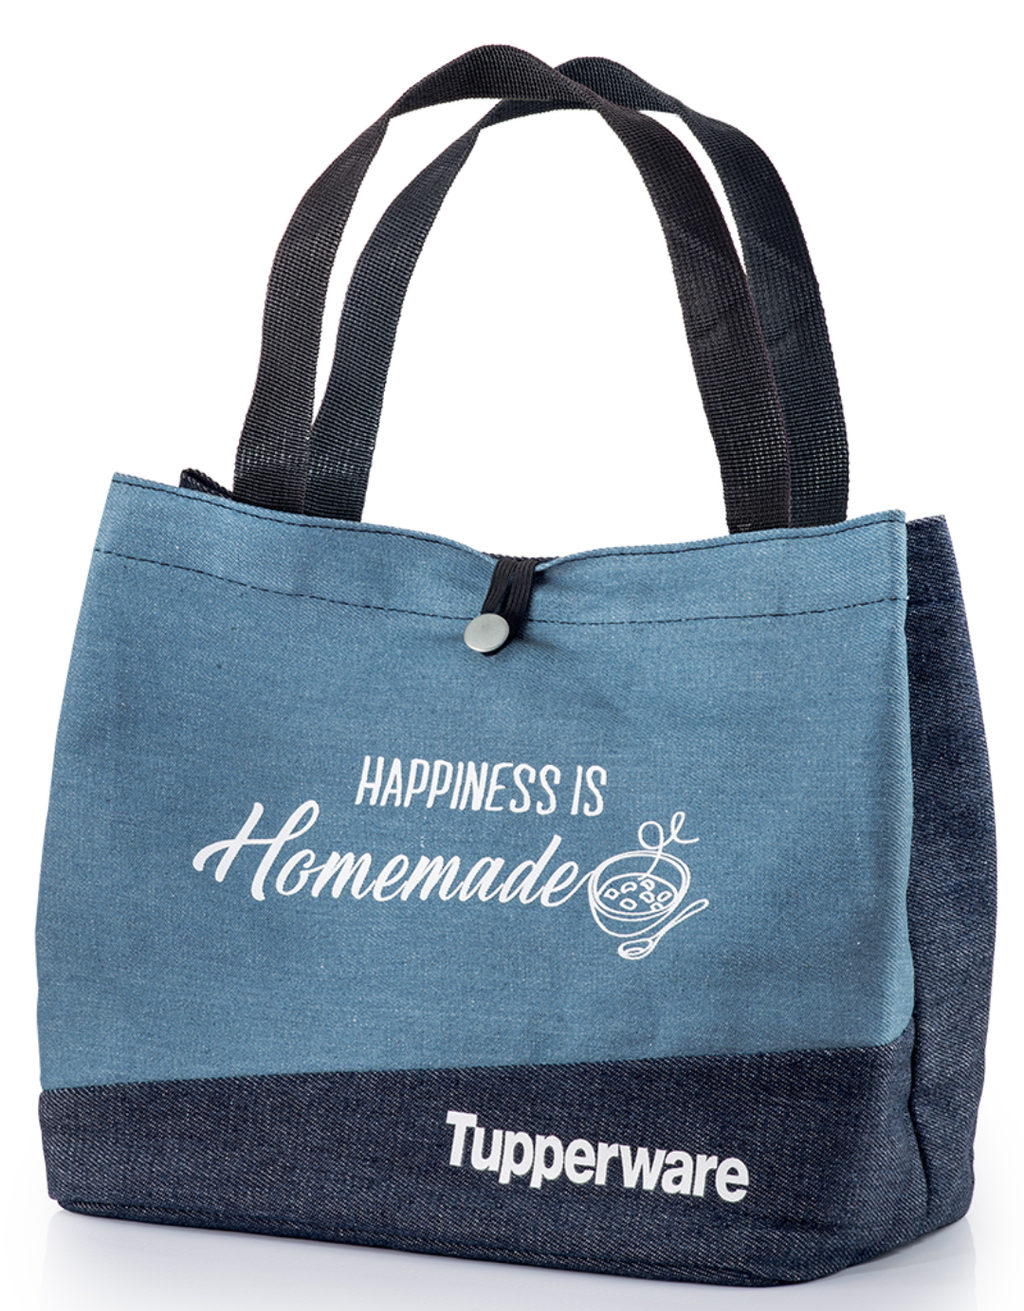 Tupperware Jeans Luncher Bag.png